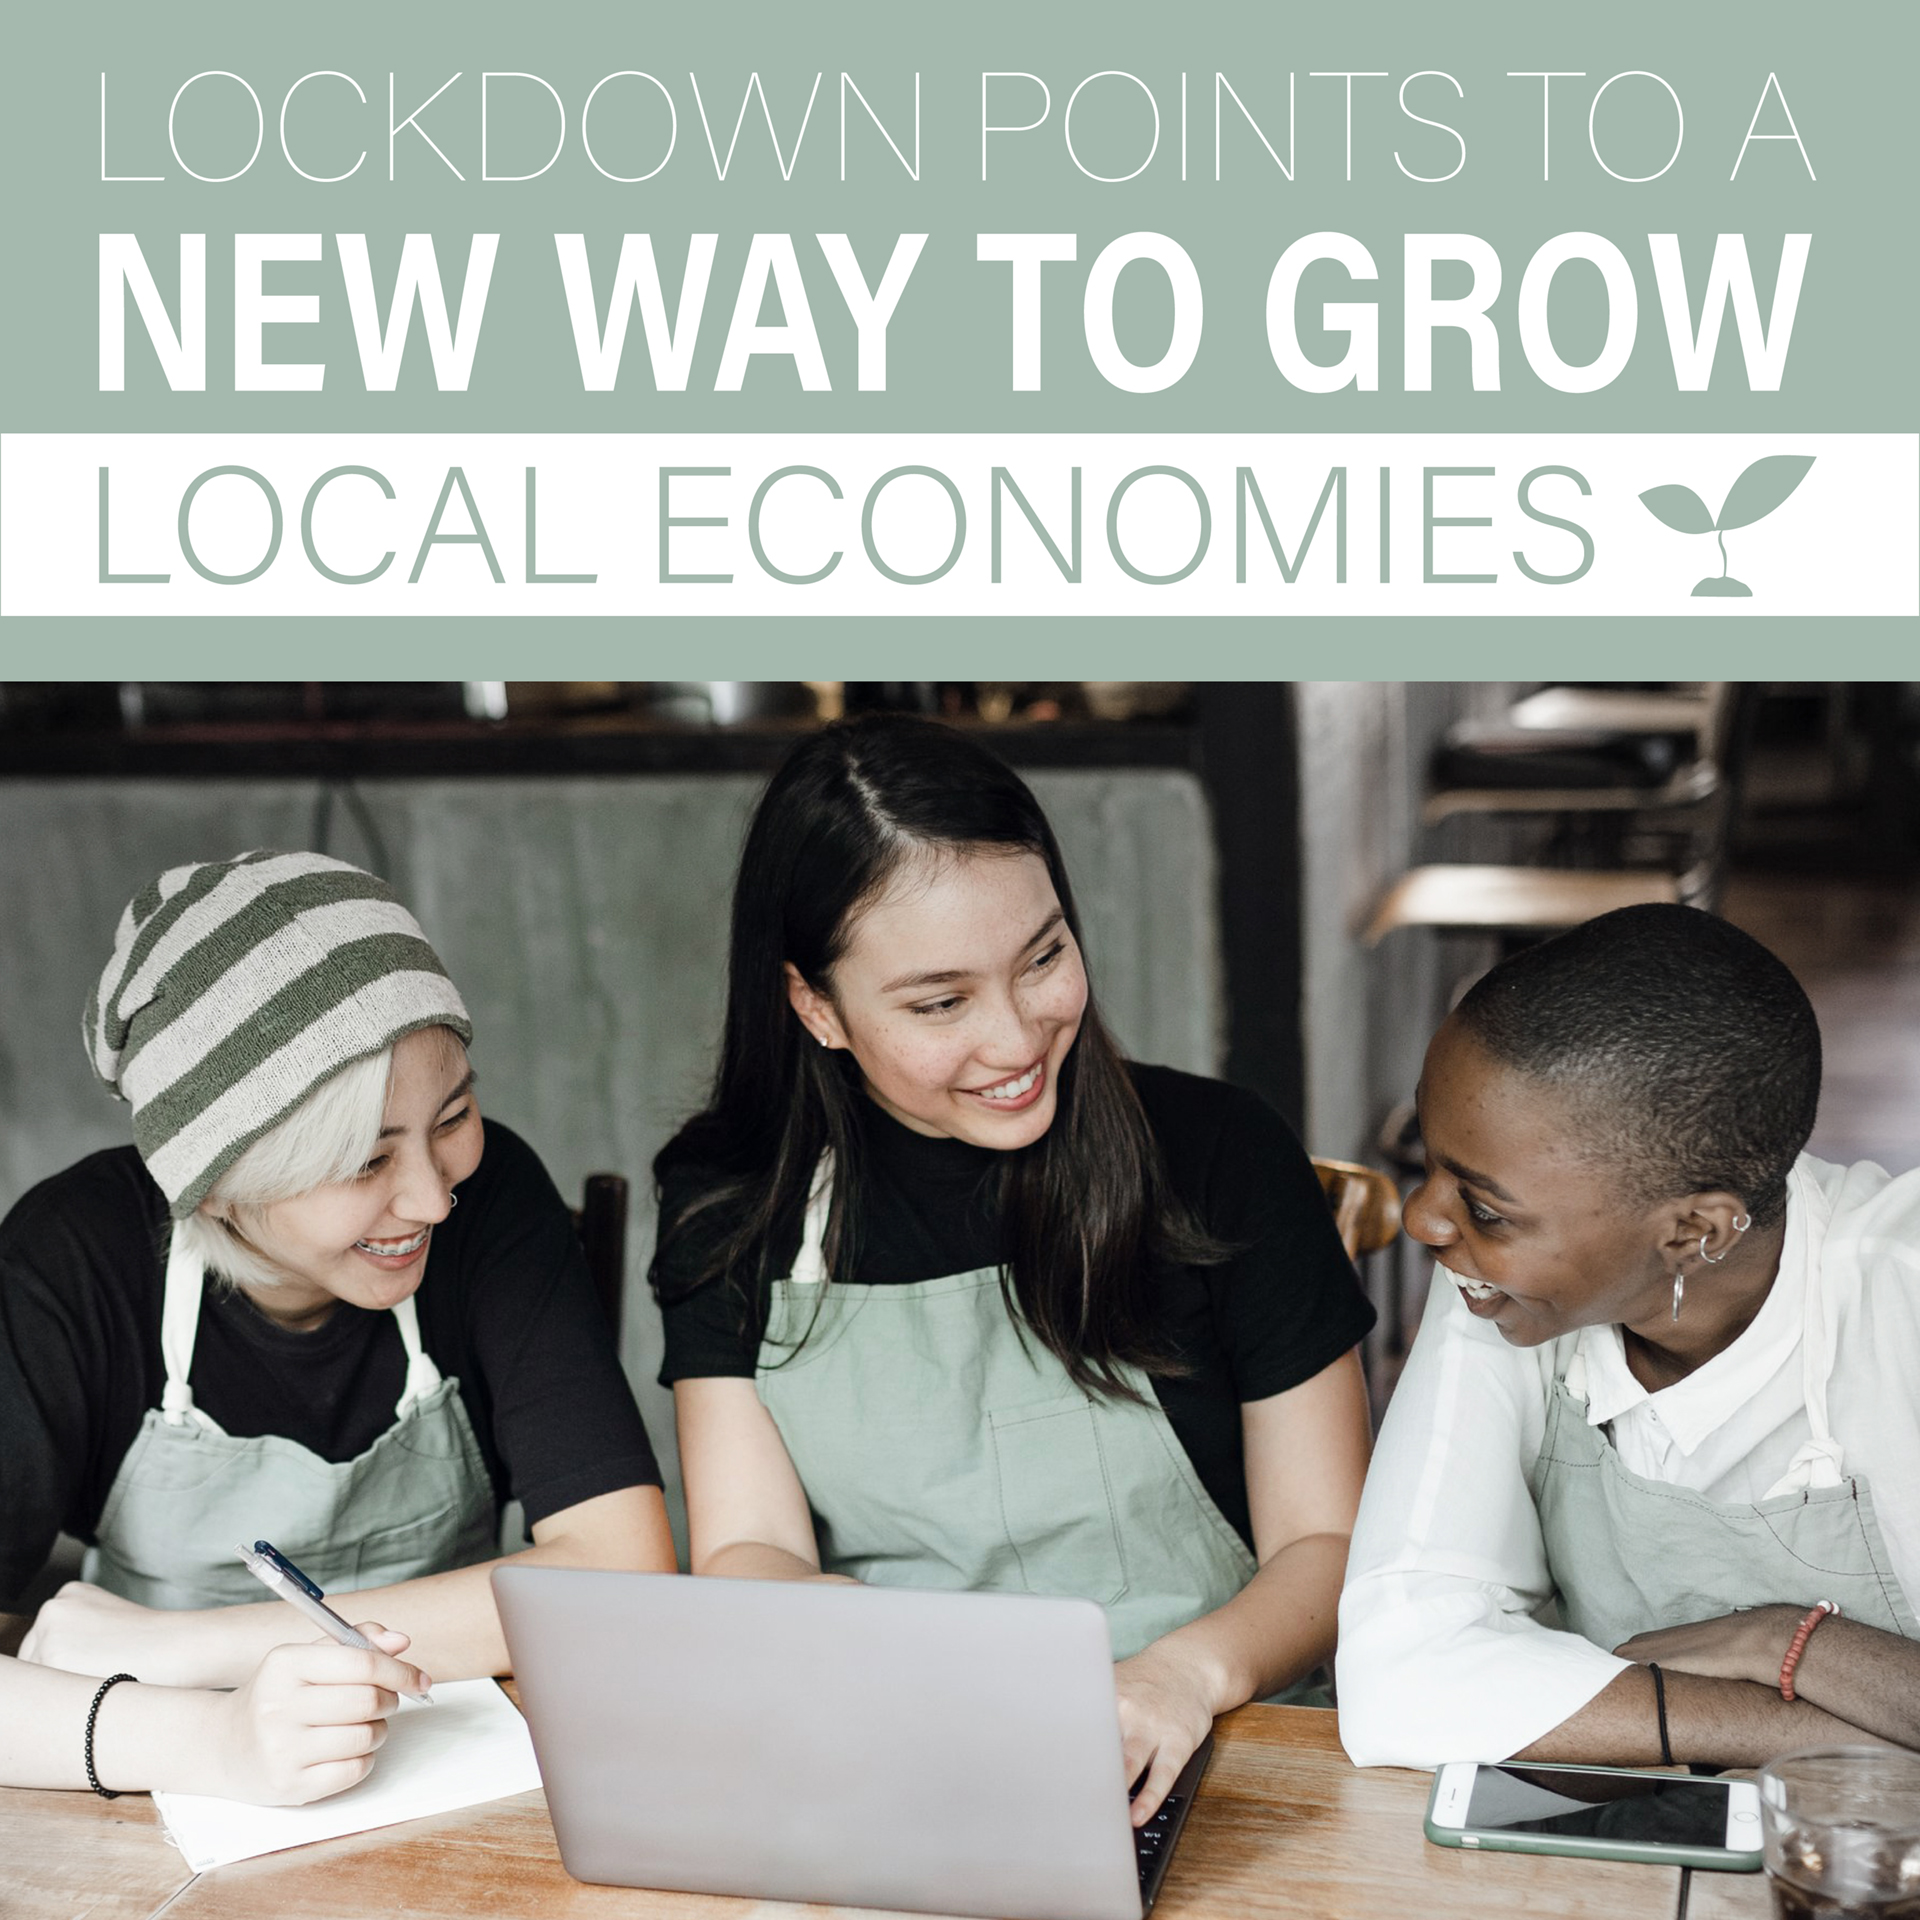 Social-Media-Lockdown-Points-To-A-New-Way-To-Grow-Local-Economies.jpg